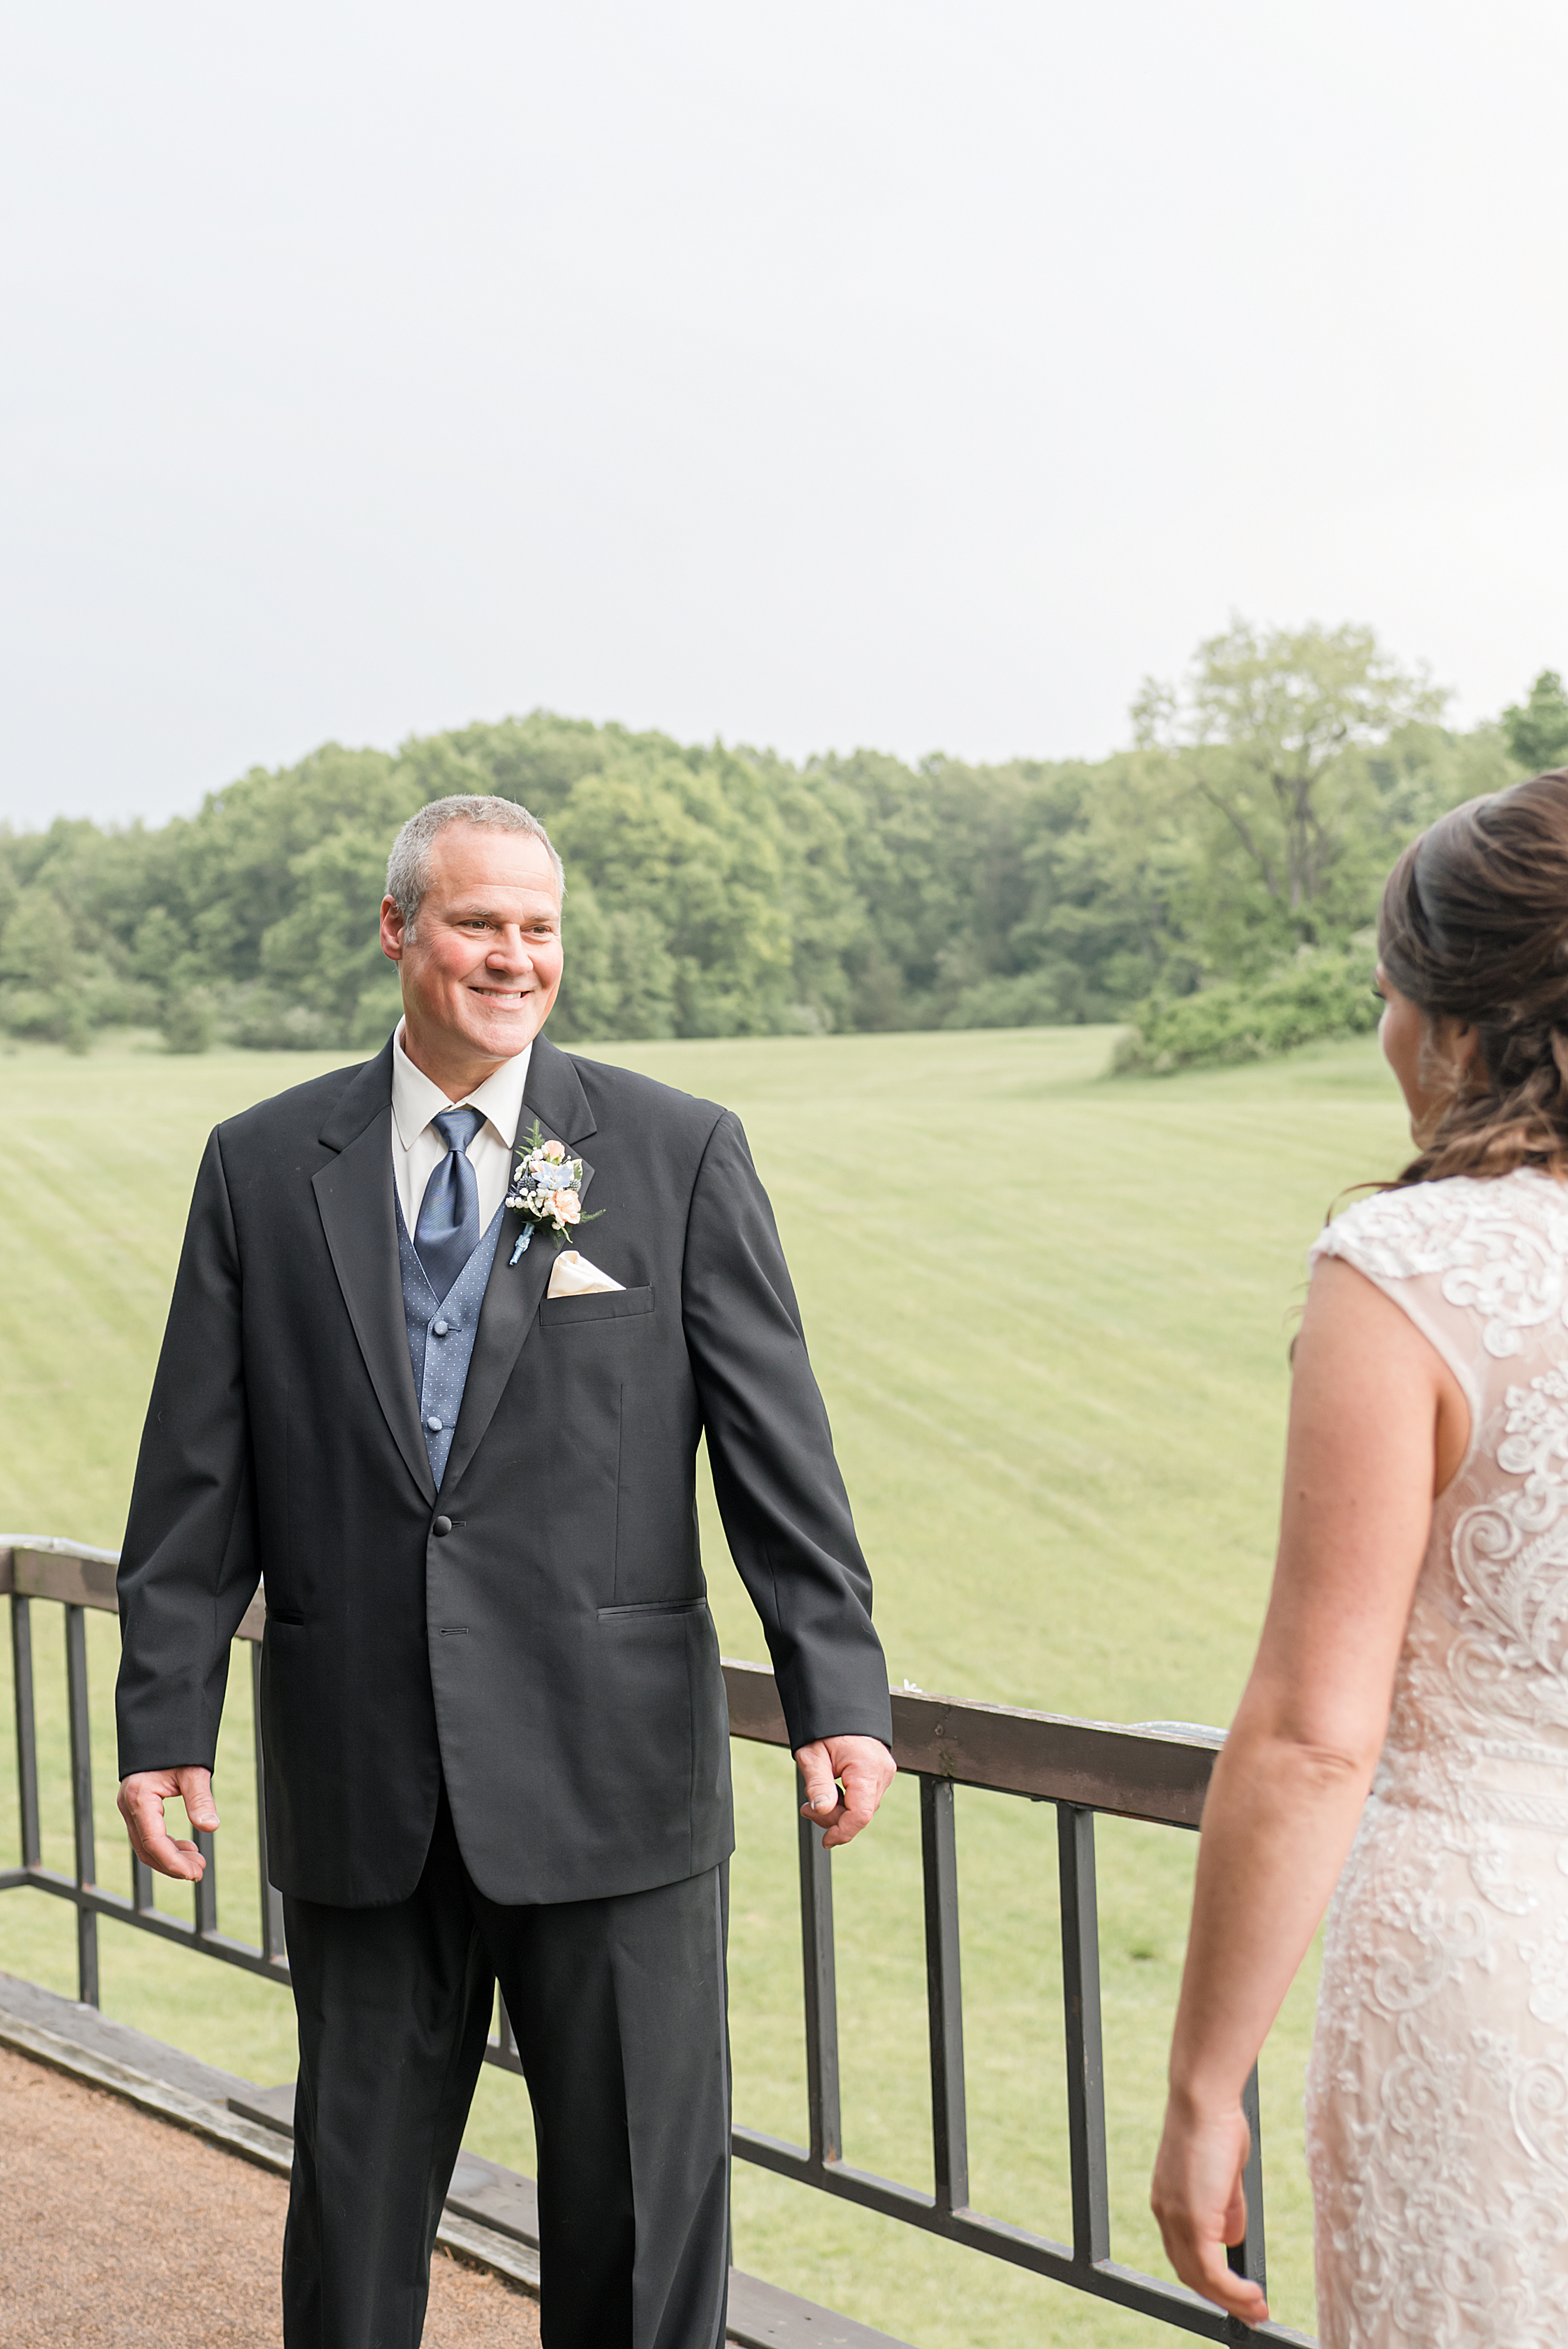 Lindsay-Adkins-Photography-Michigan-Wedding-Photographer-Sauk-Valley-Brooklyn-Michigan16